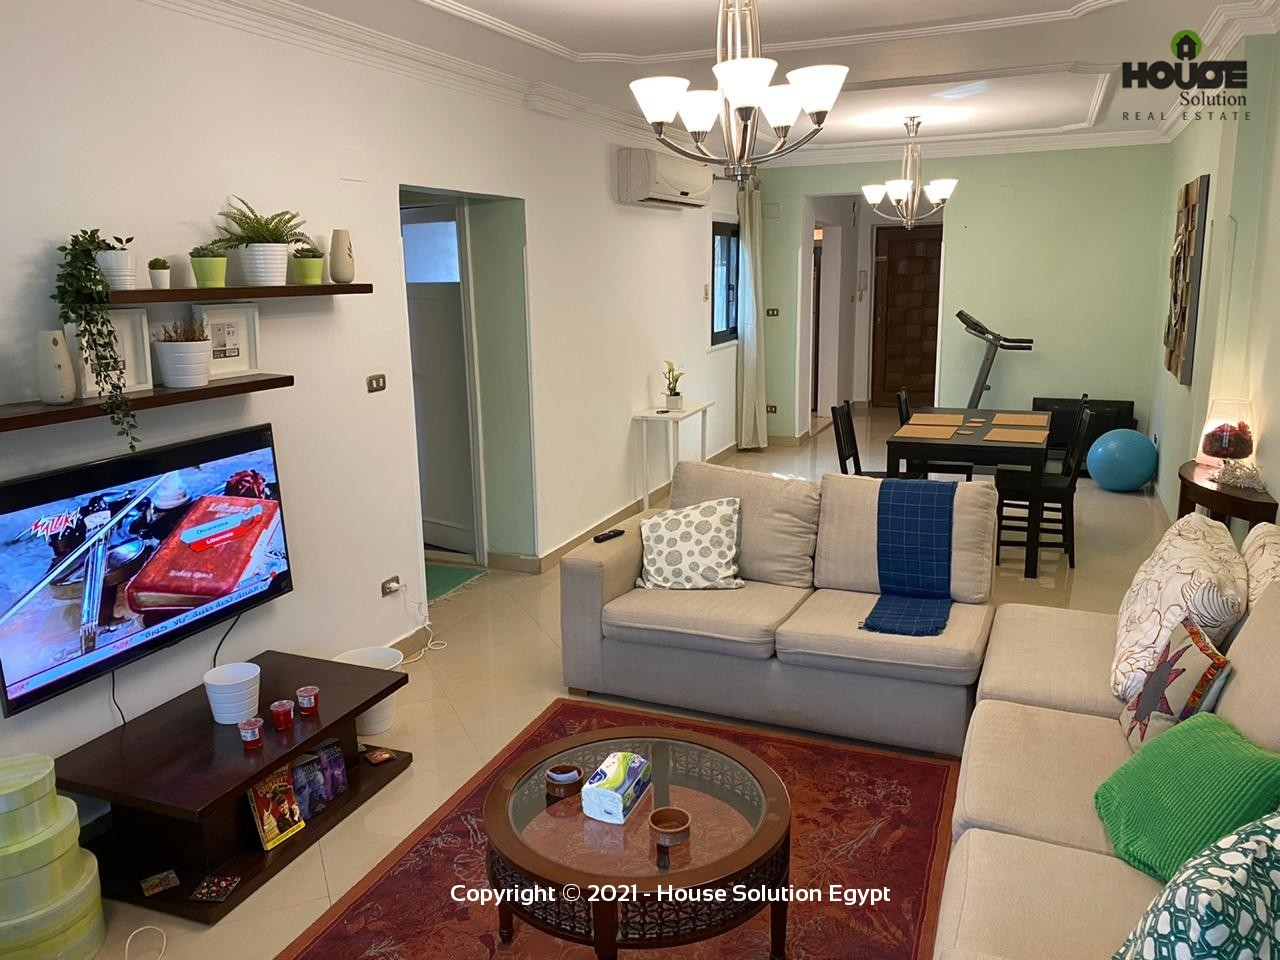 Modern Brand New Apartment For Rent In Degla El Maadi Cairo Egypt - 4976 Featured Image